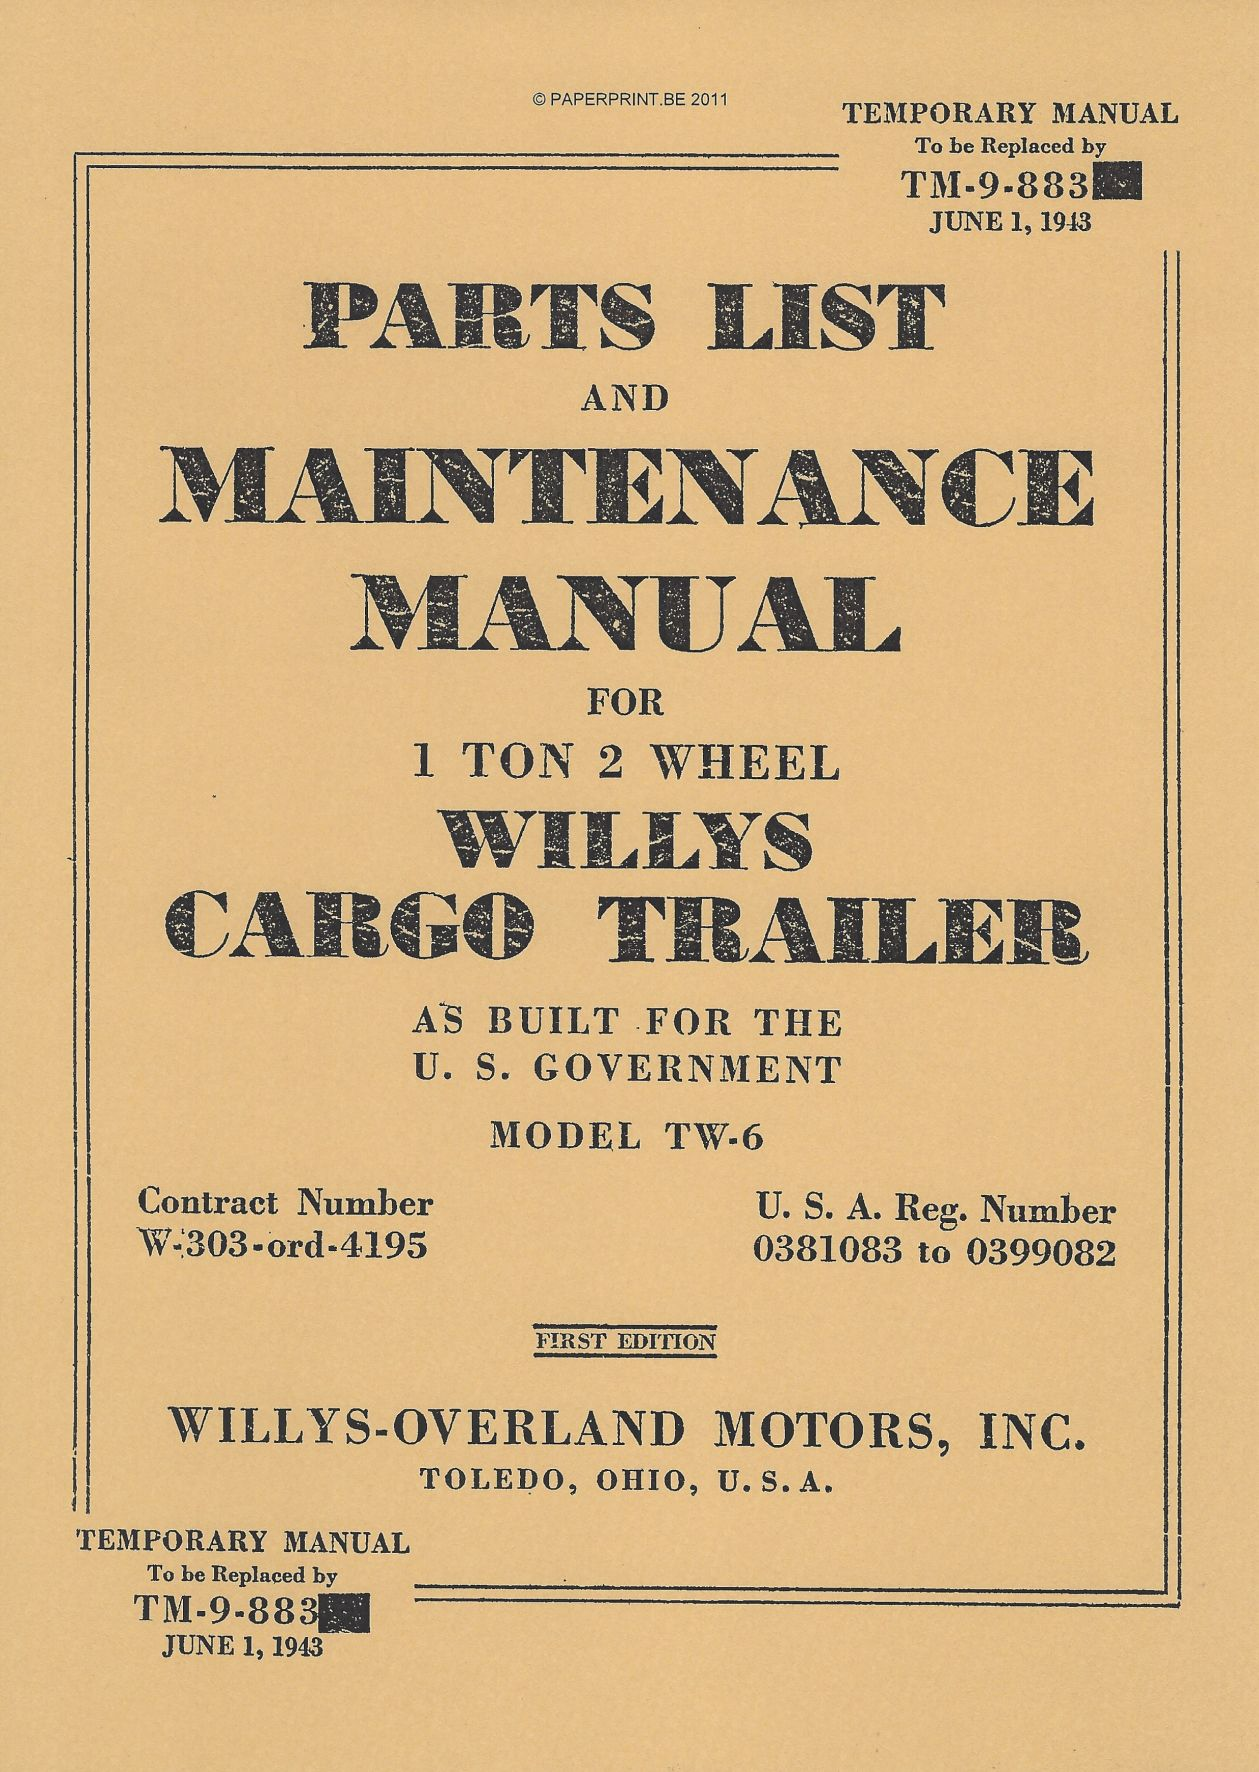 TM 9-883 US 1 TON 2 WHEEL WILLYS CARGO